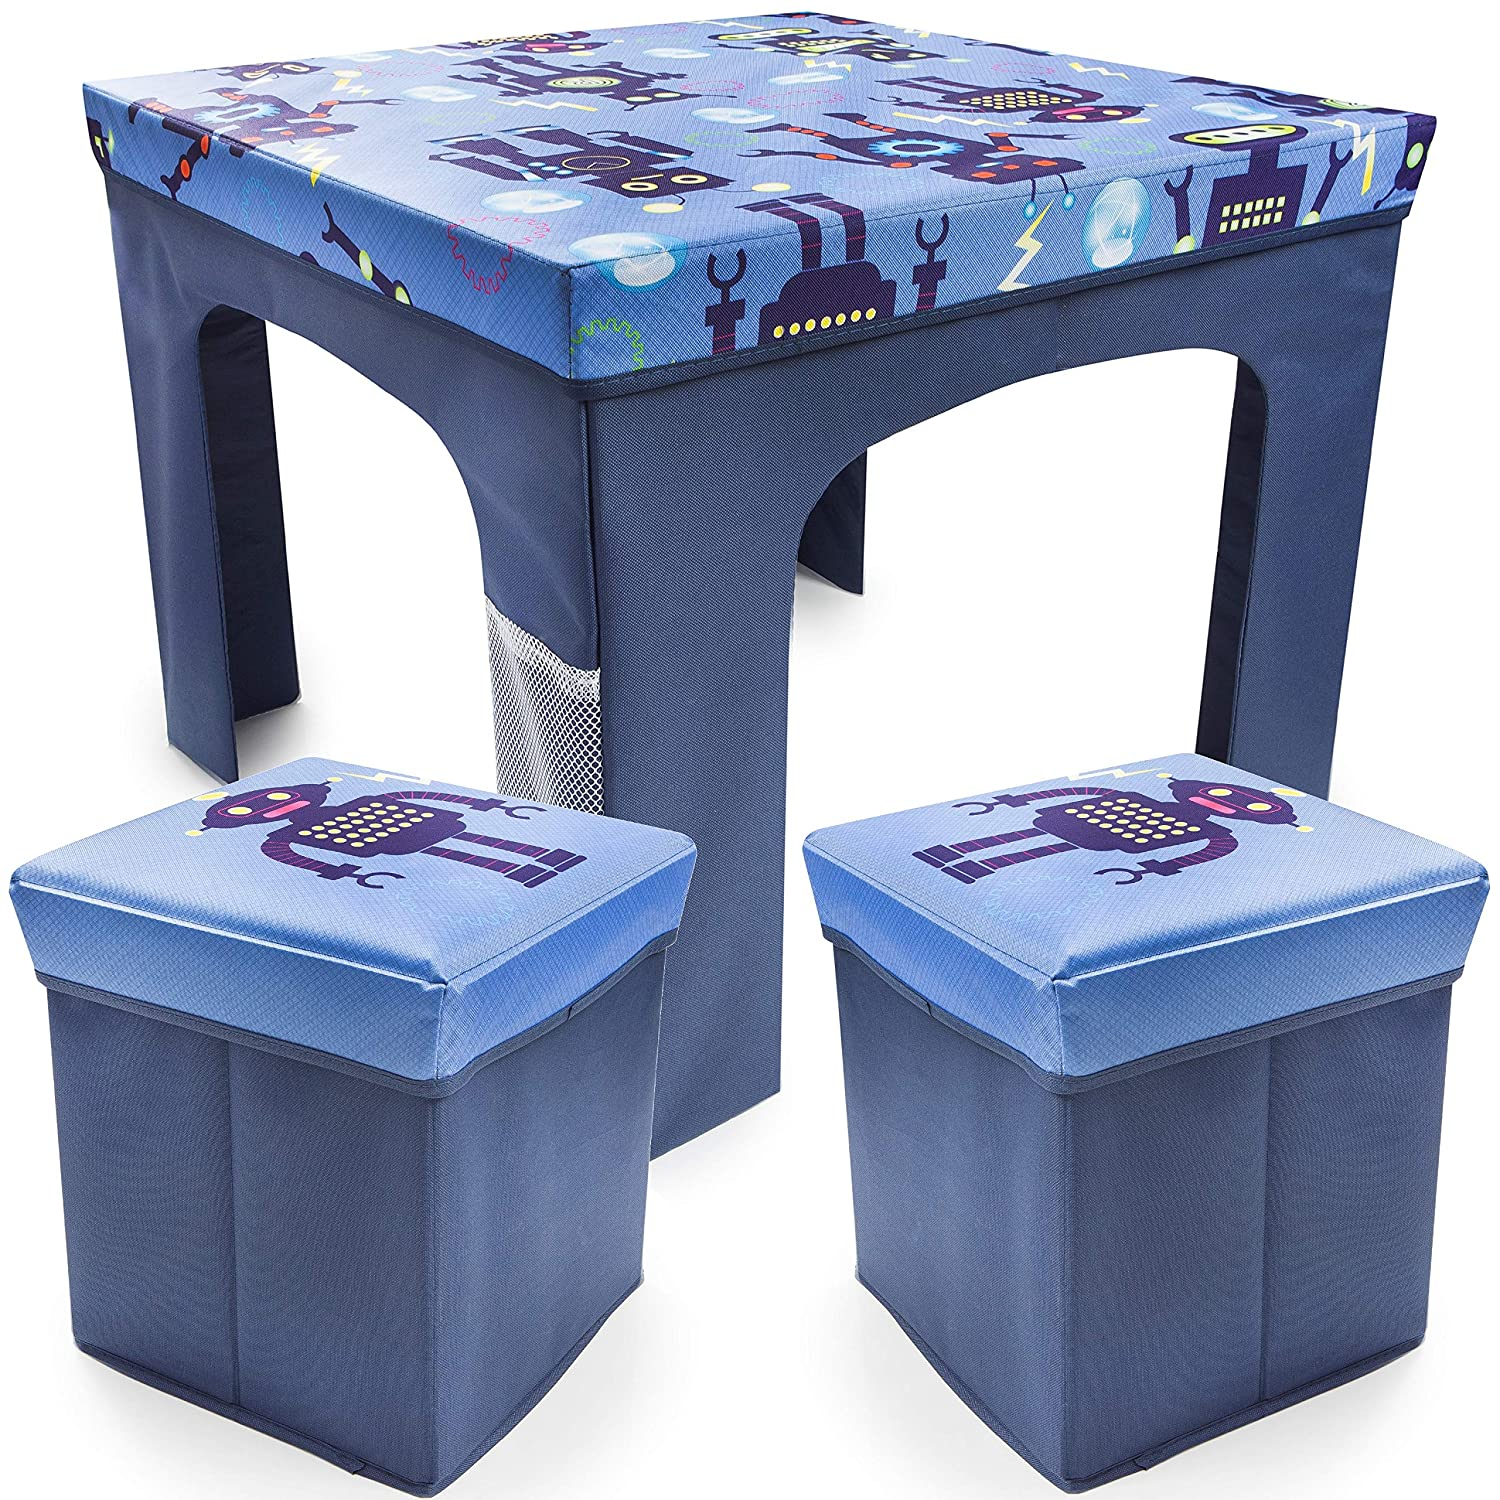 Hamilton Hartley Kids Toddler Square Folding Robot Design Table and Chairs Stool Set Foldable Playroom Bedroom Childs Nursery Furniture